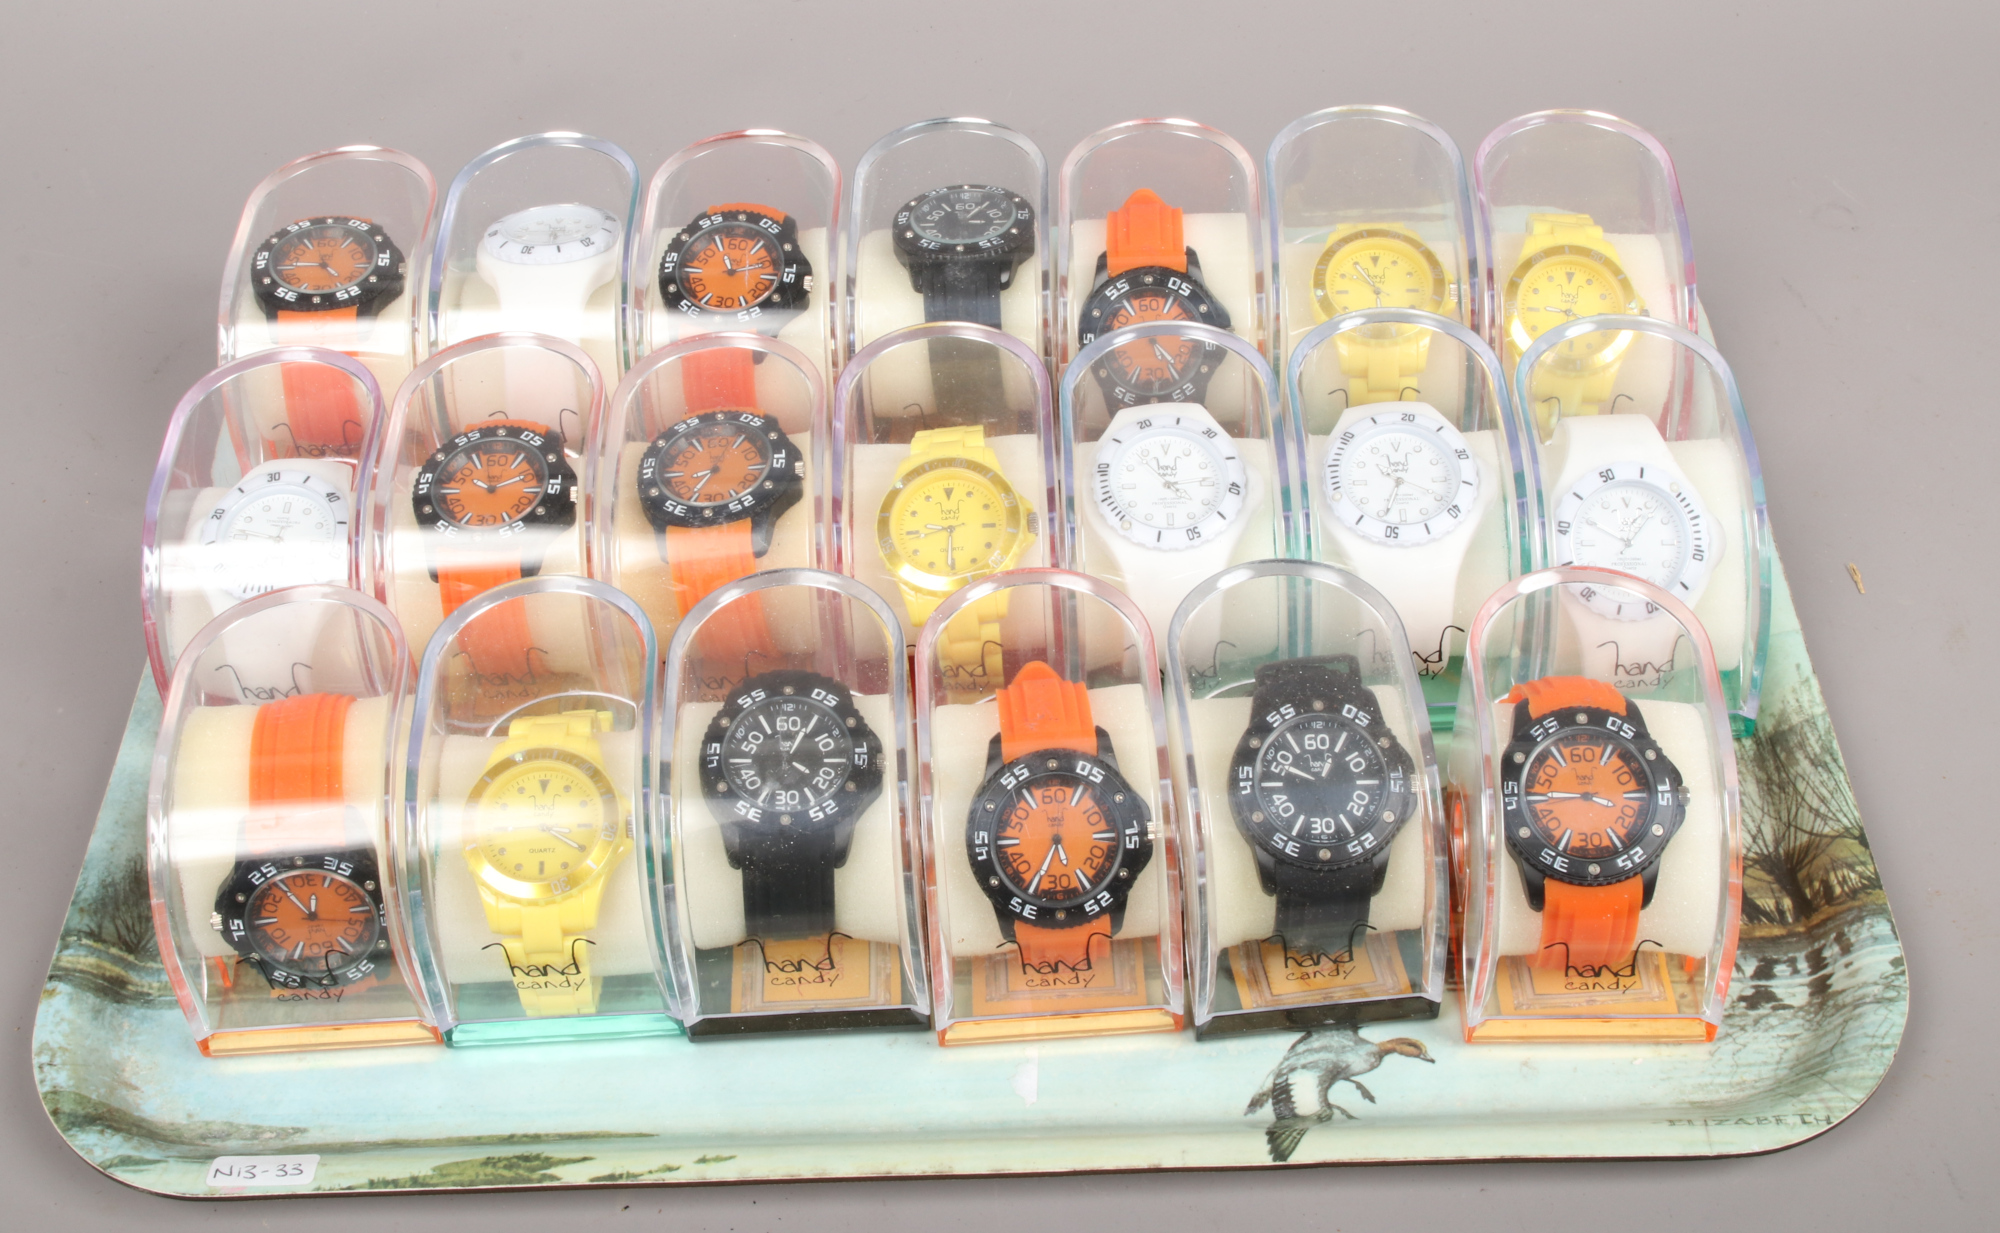 Lot 2 - Twenty cased hand candy quartz wristwatches.